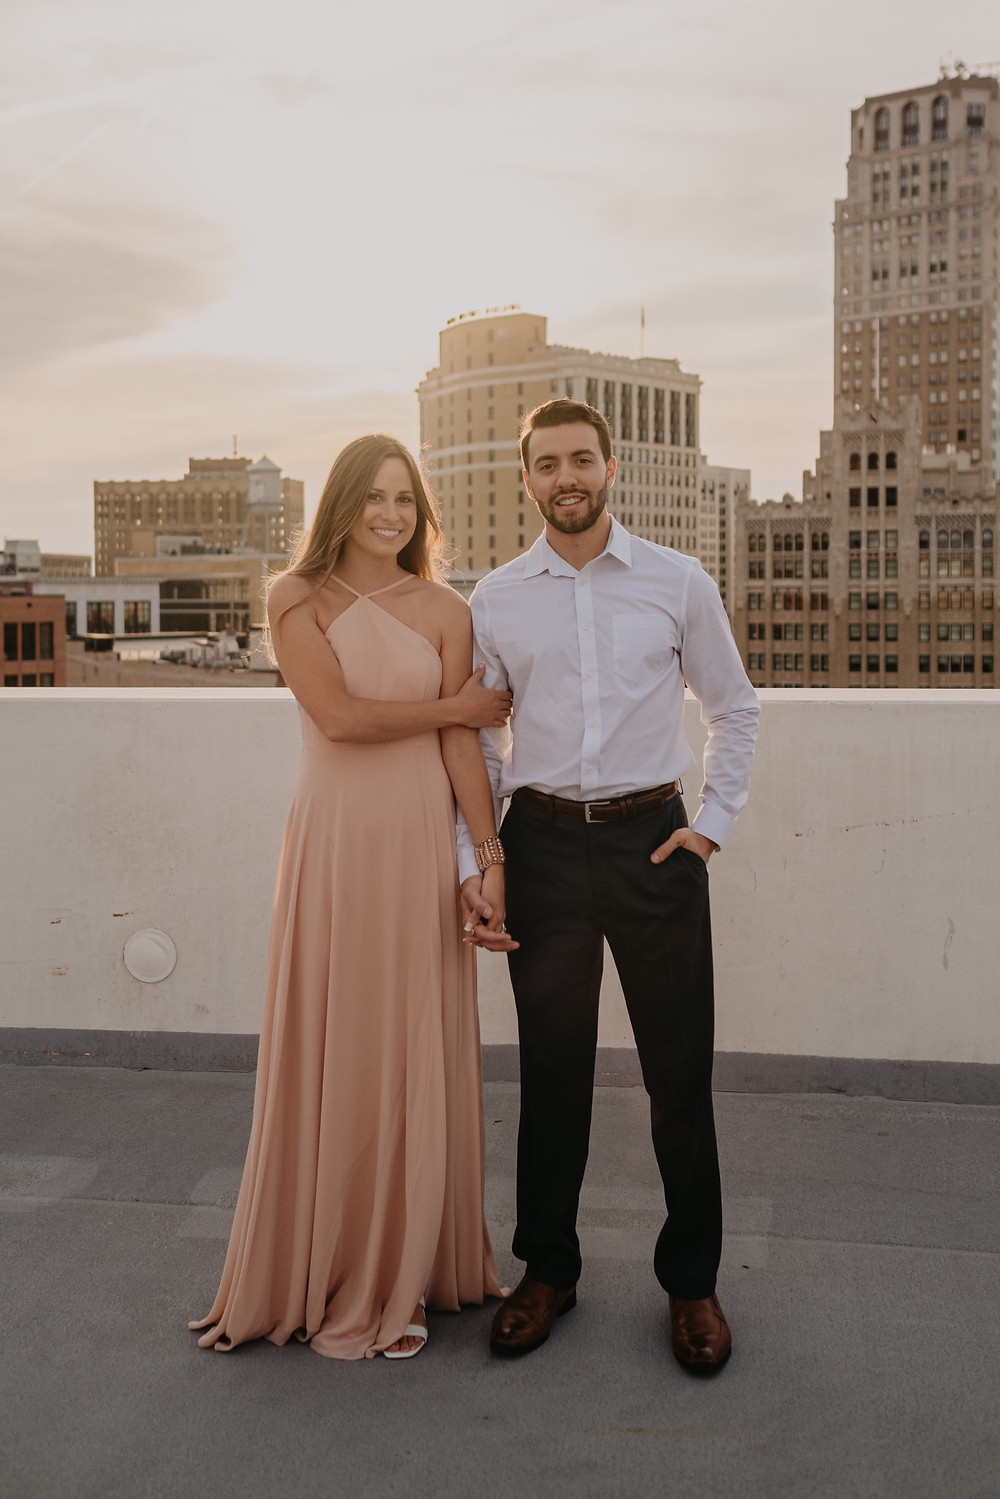 Sunset engagement photos in the city of Detroit. Photographed by Nicole Leanne Photography.